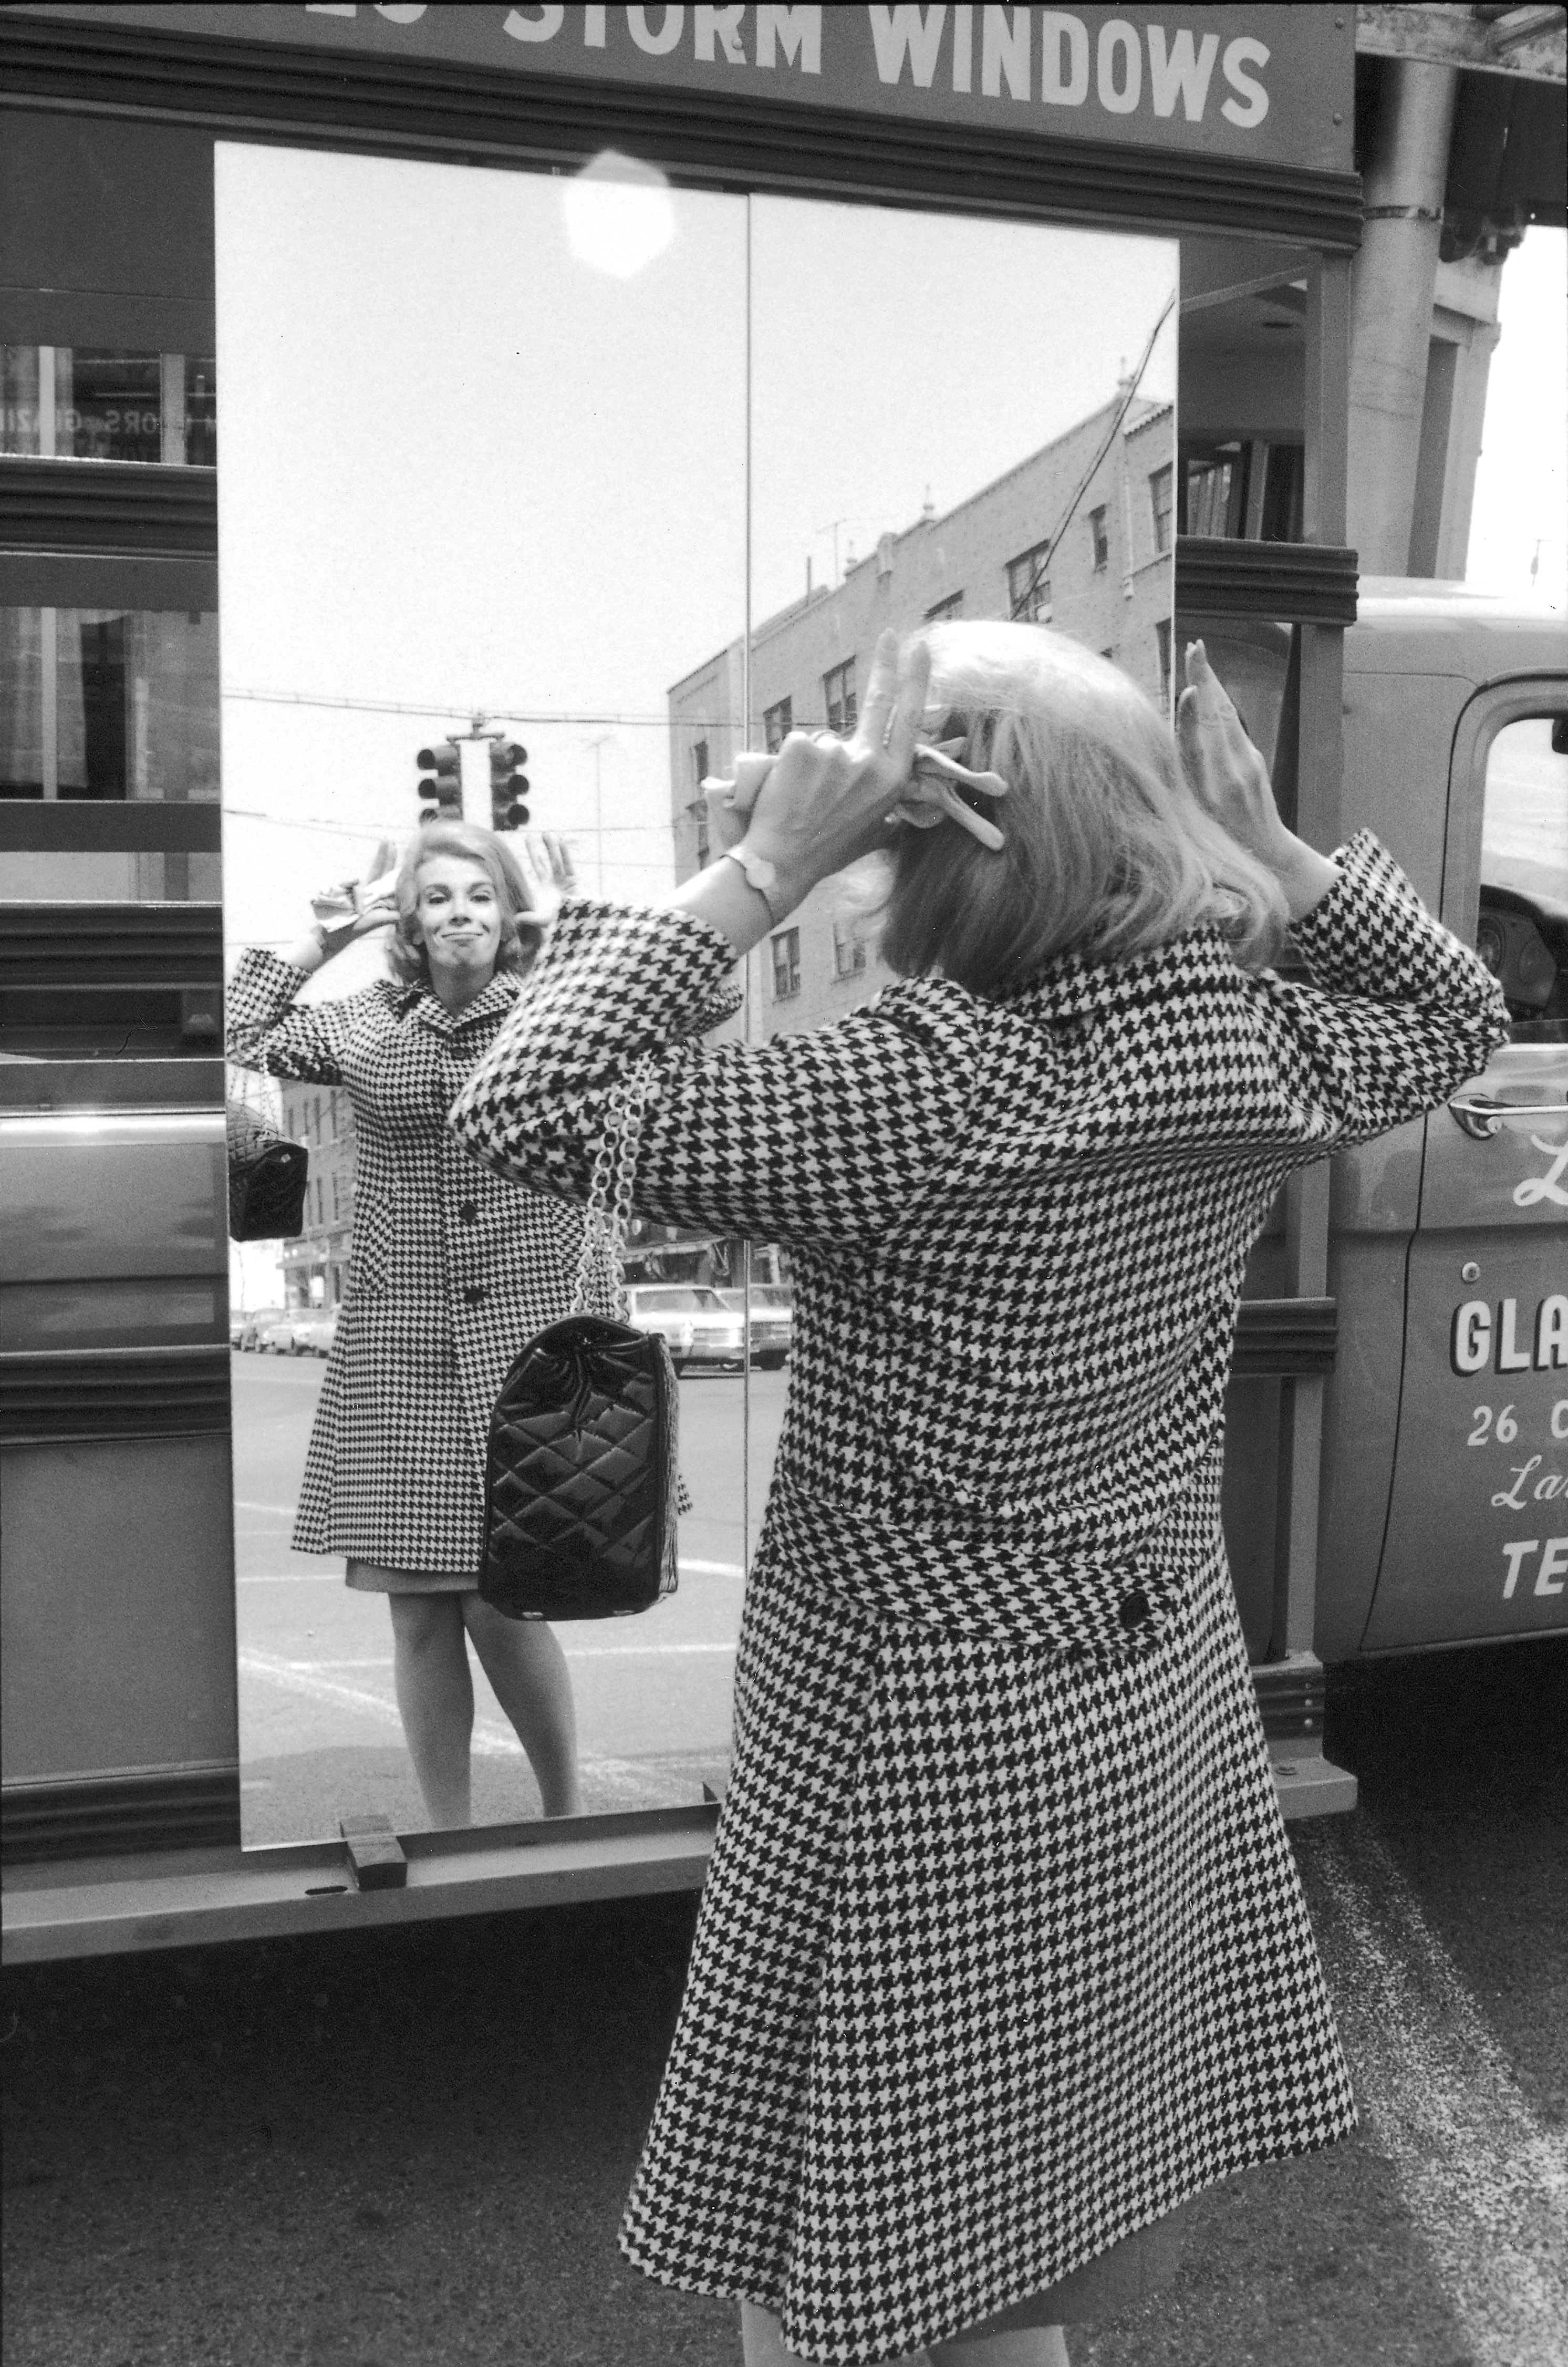 Comedienne Joan Rivers making faces in a mirror on the street in New York City on March 1, 1966.